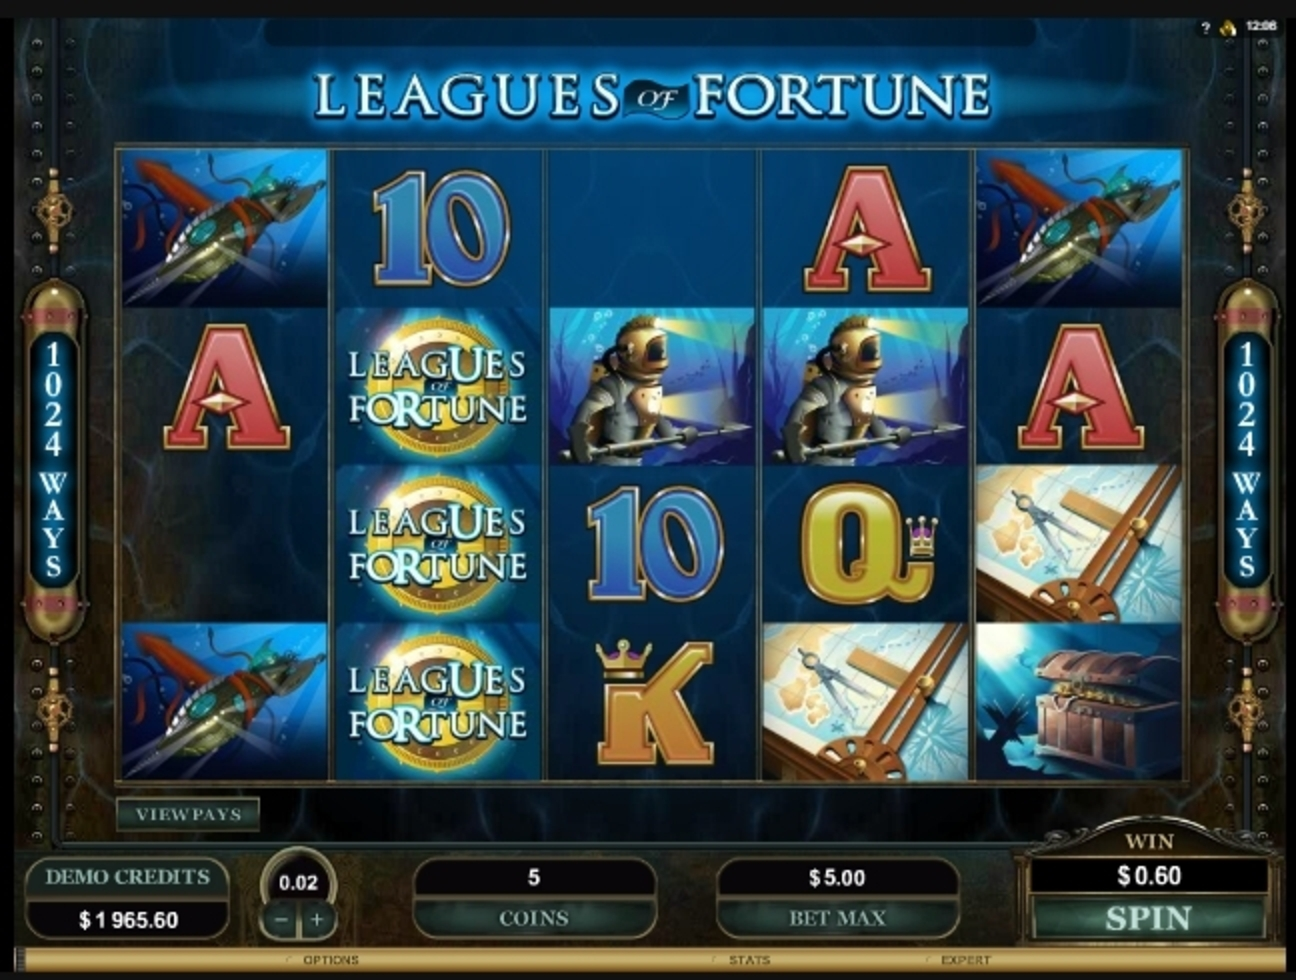 Win Money in Leagues of Fortune Free Slot Game by Microgaming